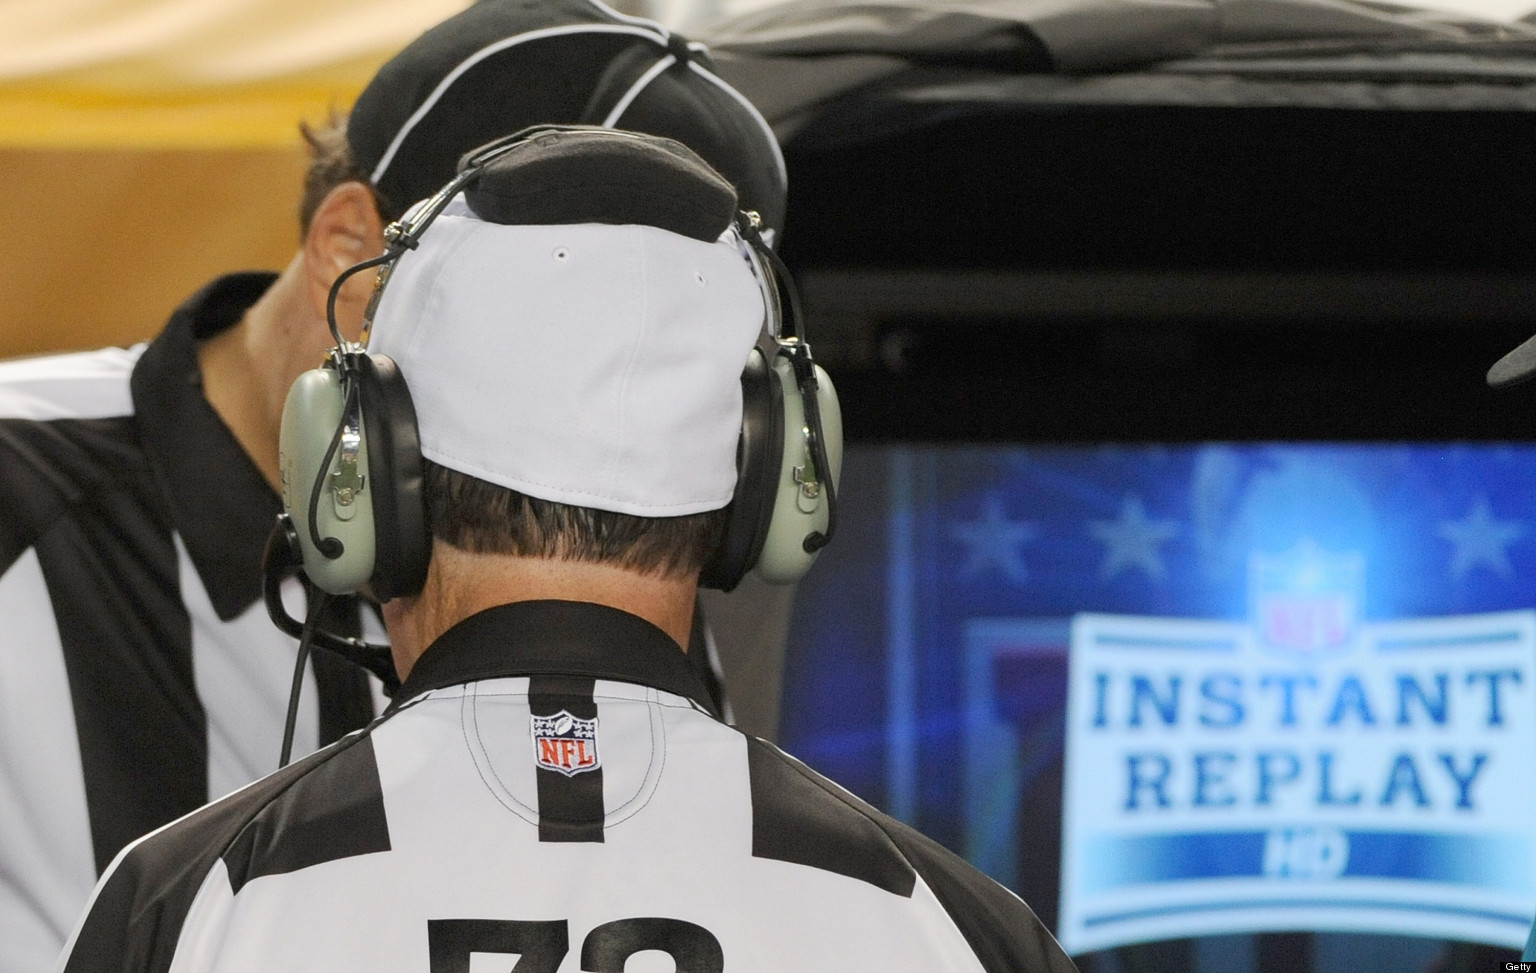 the role and importance of instant replay in the nfl